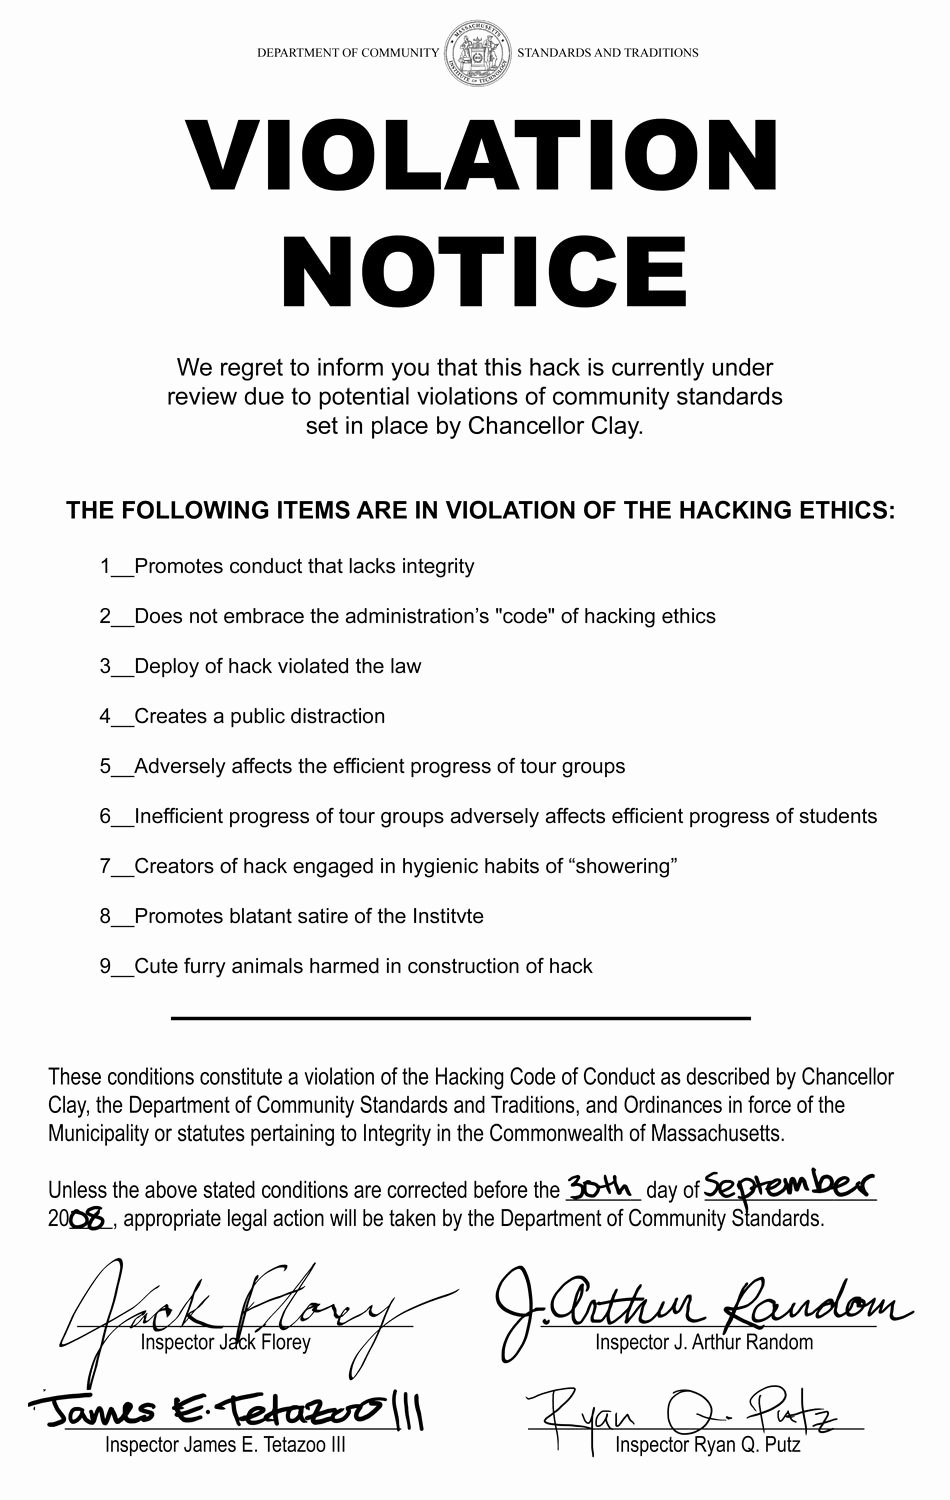 Parking Warning Notice Template Unique List Of Synonyms and Antonyms Of the Word Violation